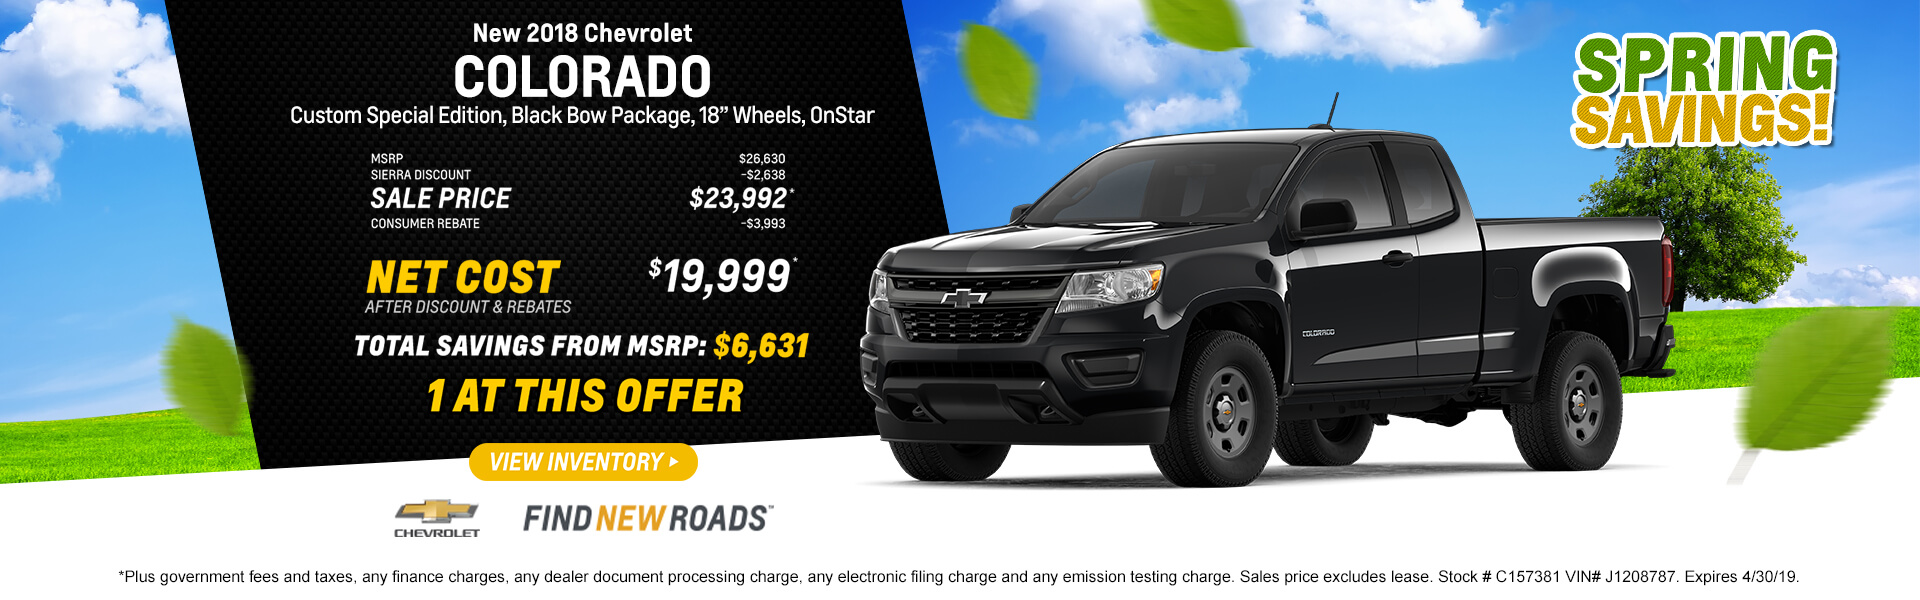 2019 Colorado $19,999 *Plus government fees and taxes, any finance charges, any dealer document processing charge, any electronic filing charge and any emission testing charge. Sales price excludes lease. Stock c158548 Vin # K1190402. Expires 3/31/19